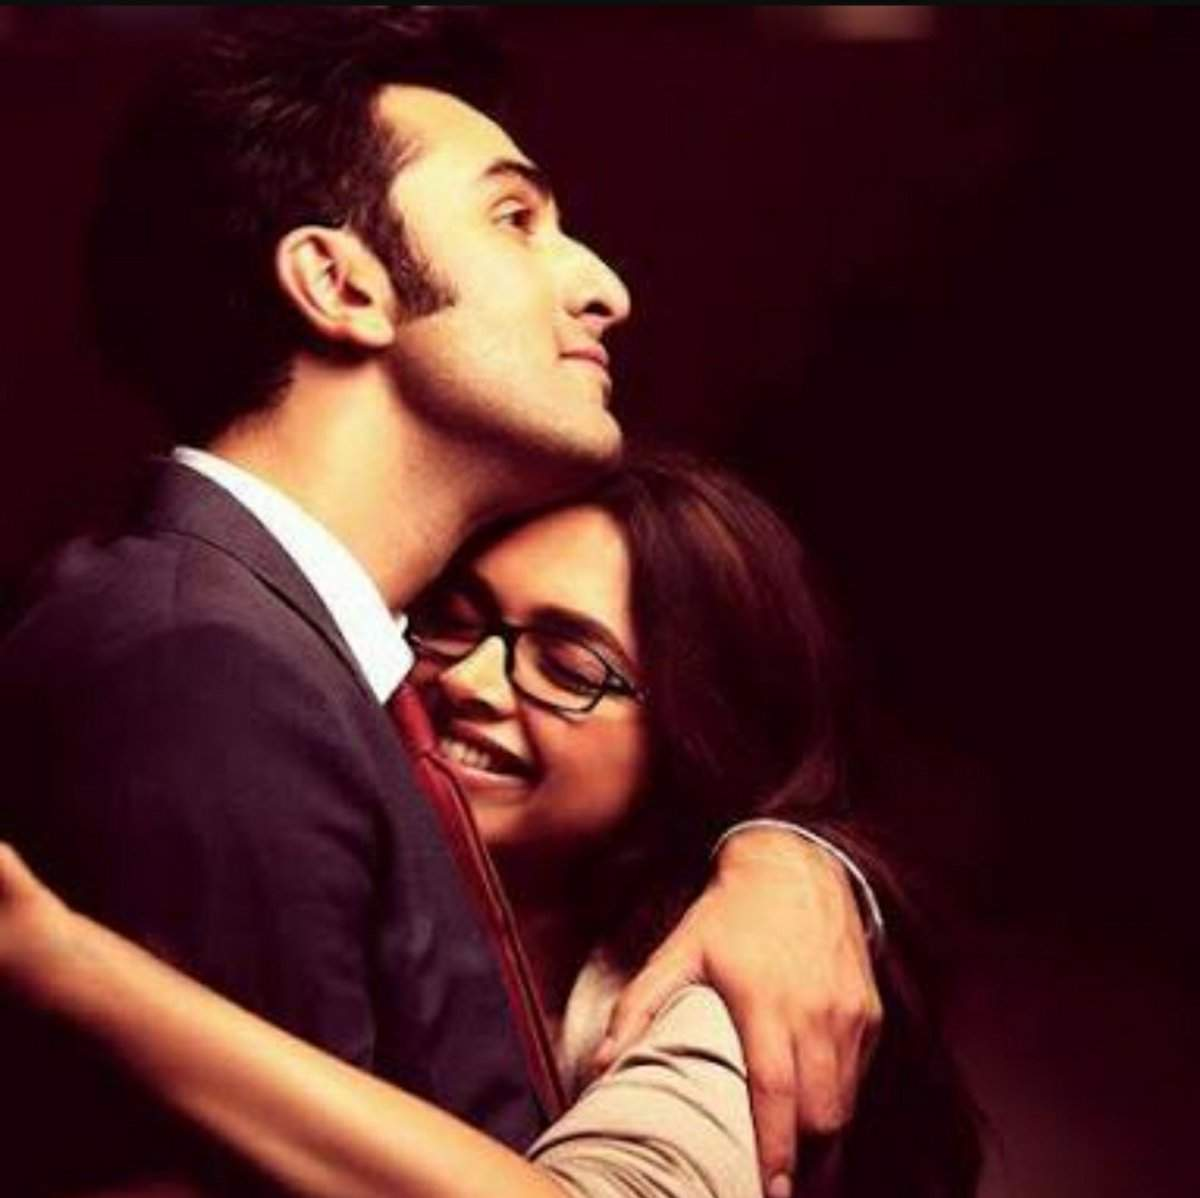 Ye Jawani He Diwani Pagalworld 10 Of The Most Heart Warming Movie Proposals Of All Time